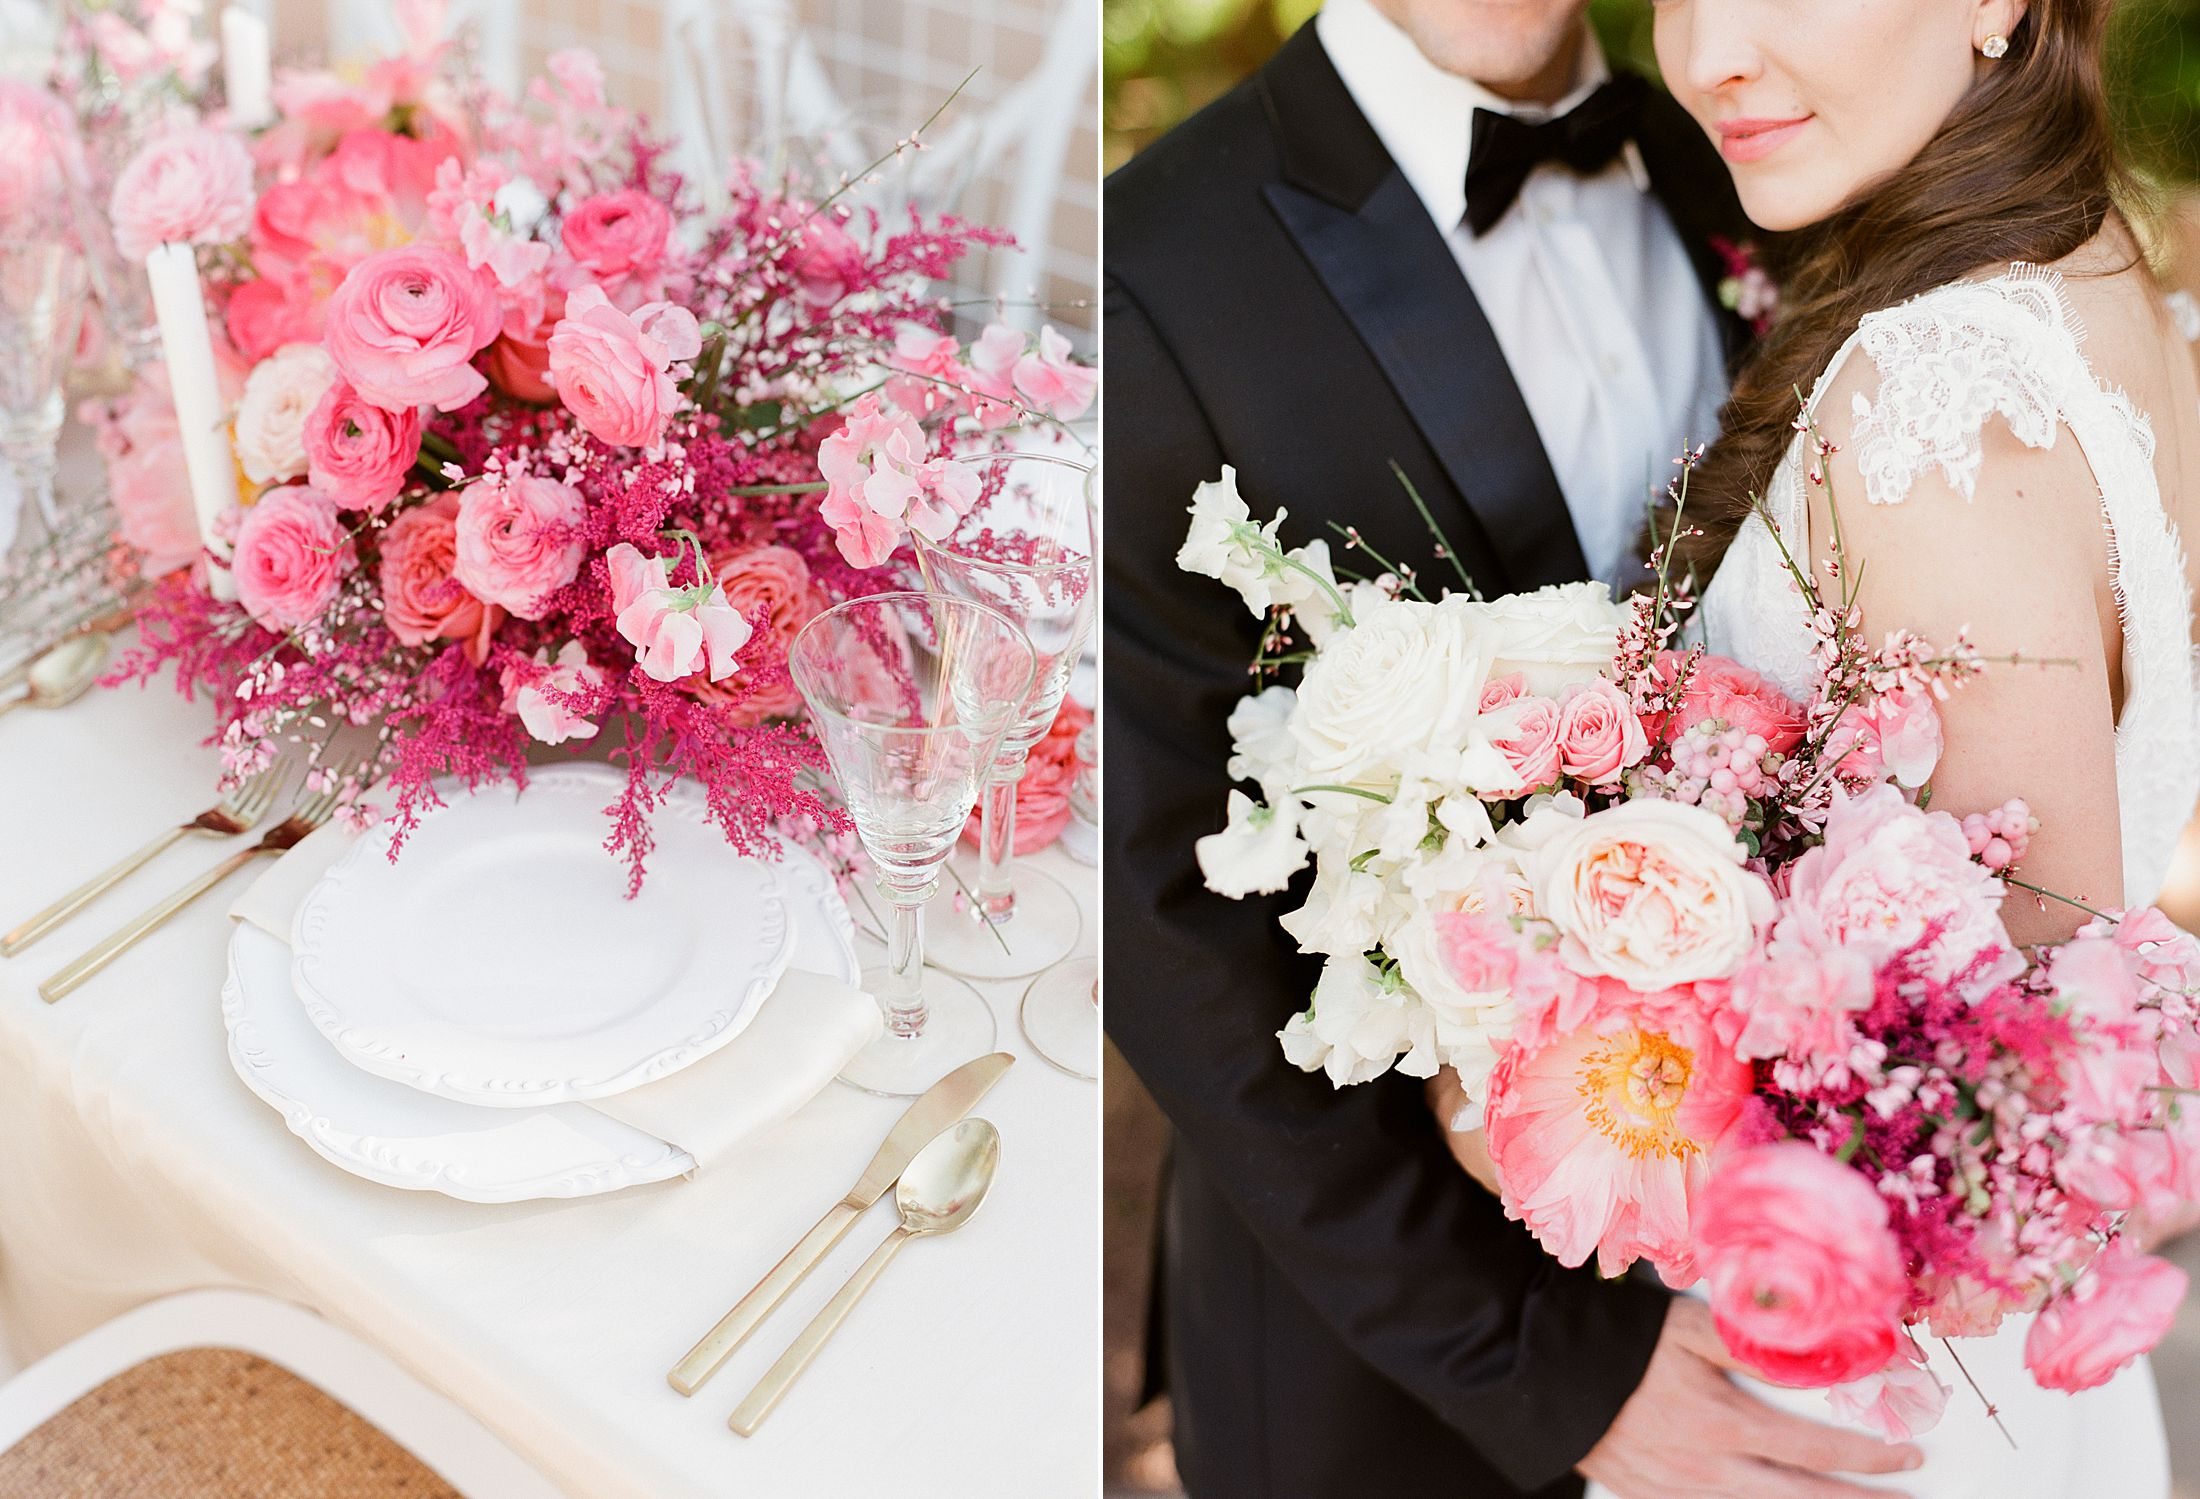 Pink Ombre Wedding Inspiration on Style Me Pretty - Royal Palms Wedding - Scottsdale Wedding - Ashley Baumgartner - Bloom and Blueprint - Wedding Puppies - Bulldog Puppies_0034.jpg